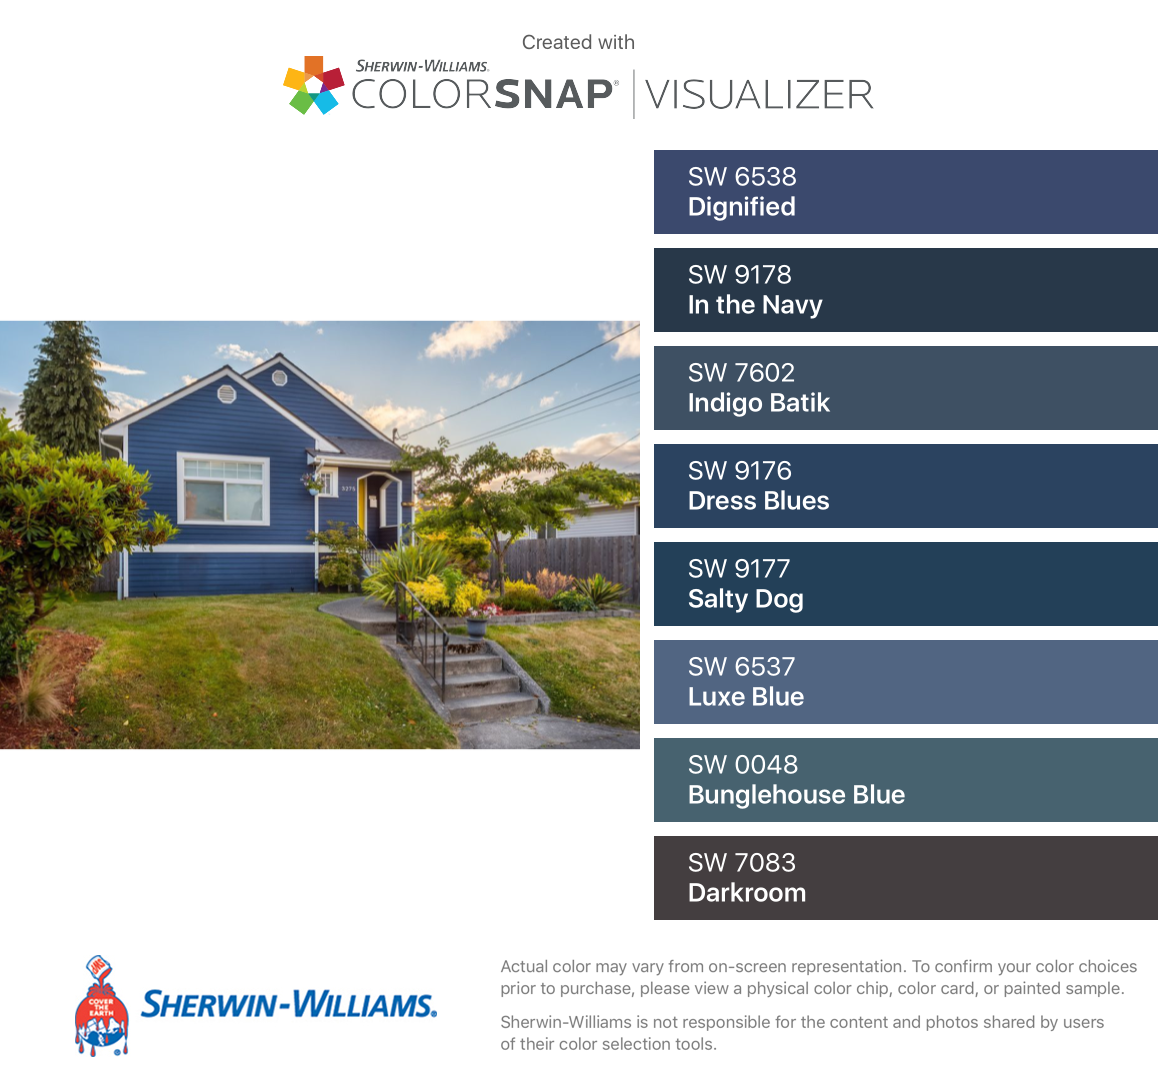 I Found These Colors With Colorsnap Visualizer For Iphone By Sherwin Williams Dignified Sw 6538 In The Navy Sw 917 Darkroom Indigo Batik Sherwin Williams [ 1088 x 1158 Pixel ]